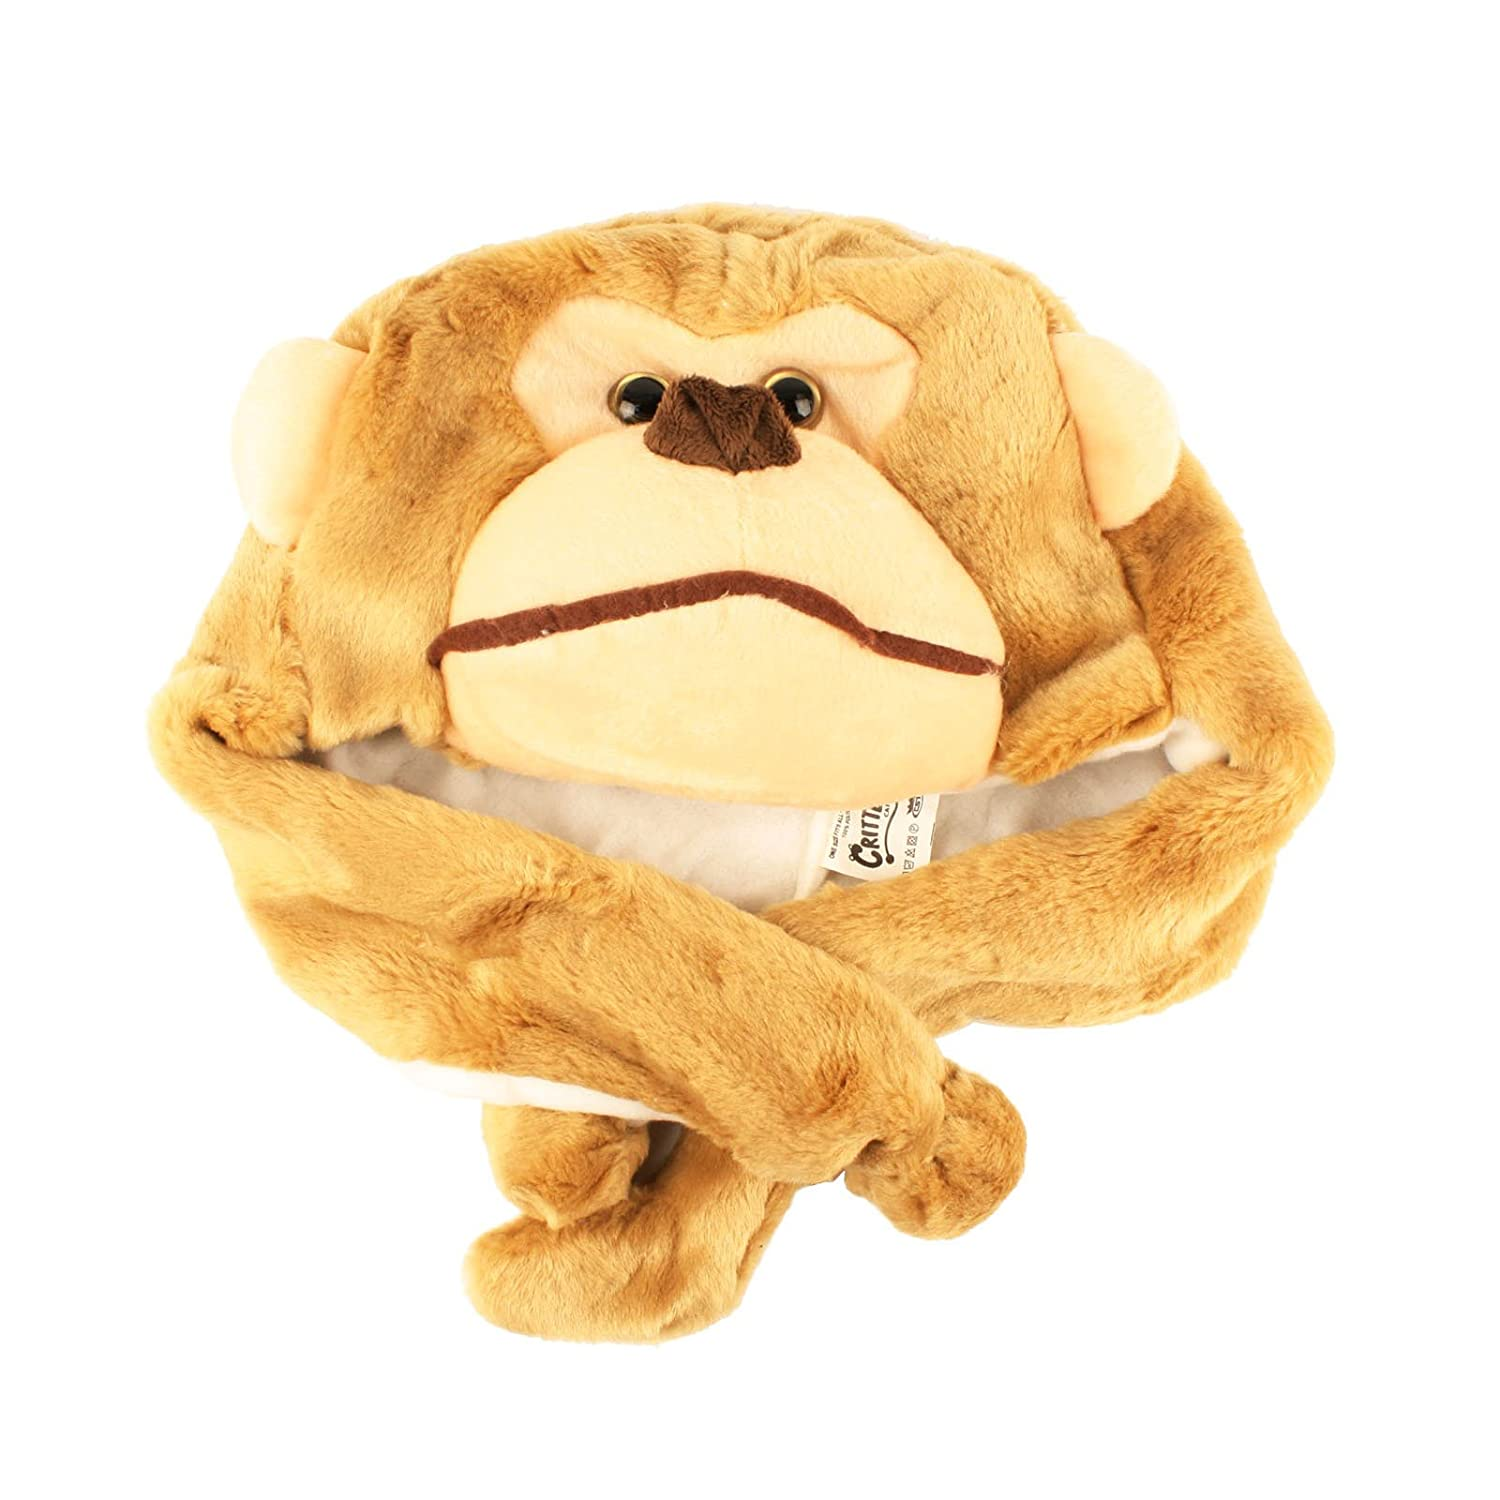 Monkey Critter Cap Plush Animal Hat with Ear Flaps That Button Under the Chin (Brown) …